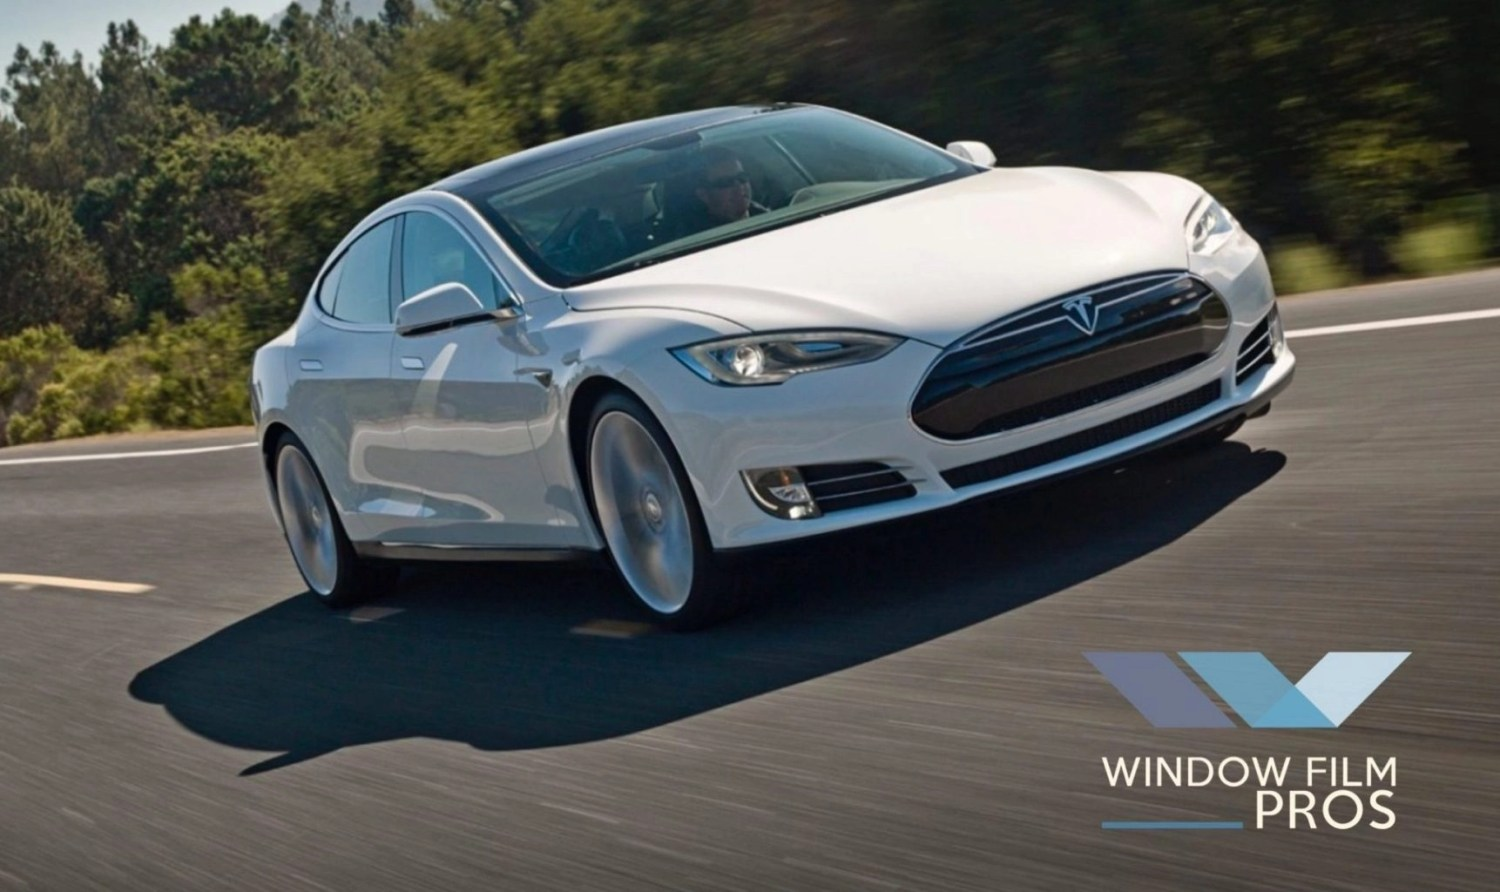 Extend Electric / Hybrid Vehicle Range with Automotive Window Film - Window Film Pros - Window Tinting and Window Film Related Information